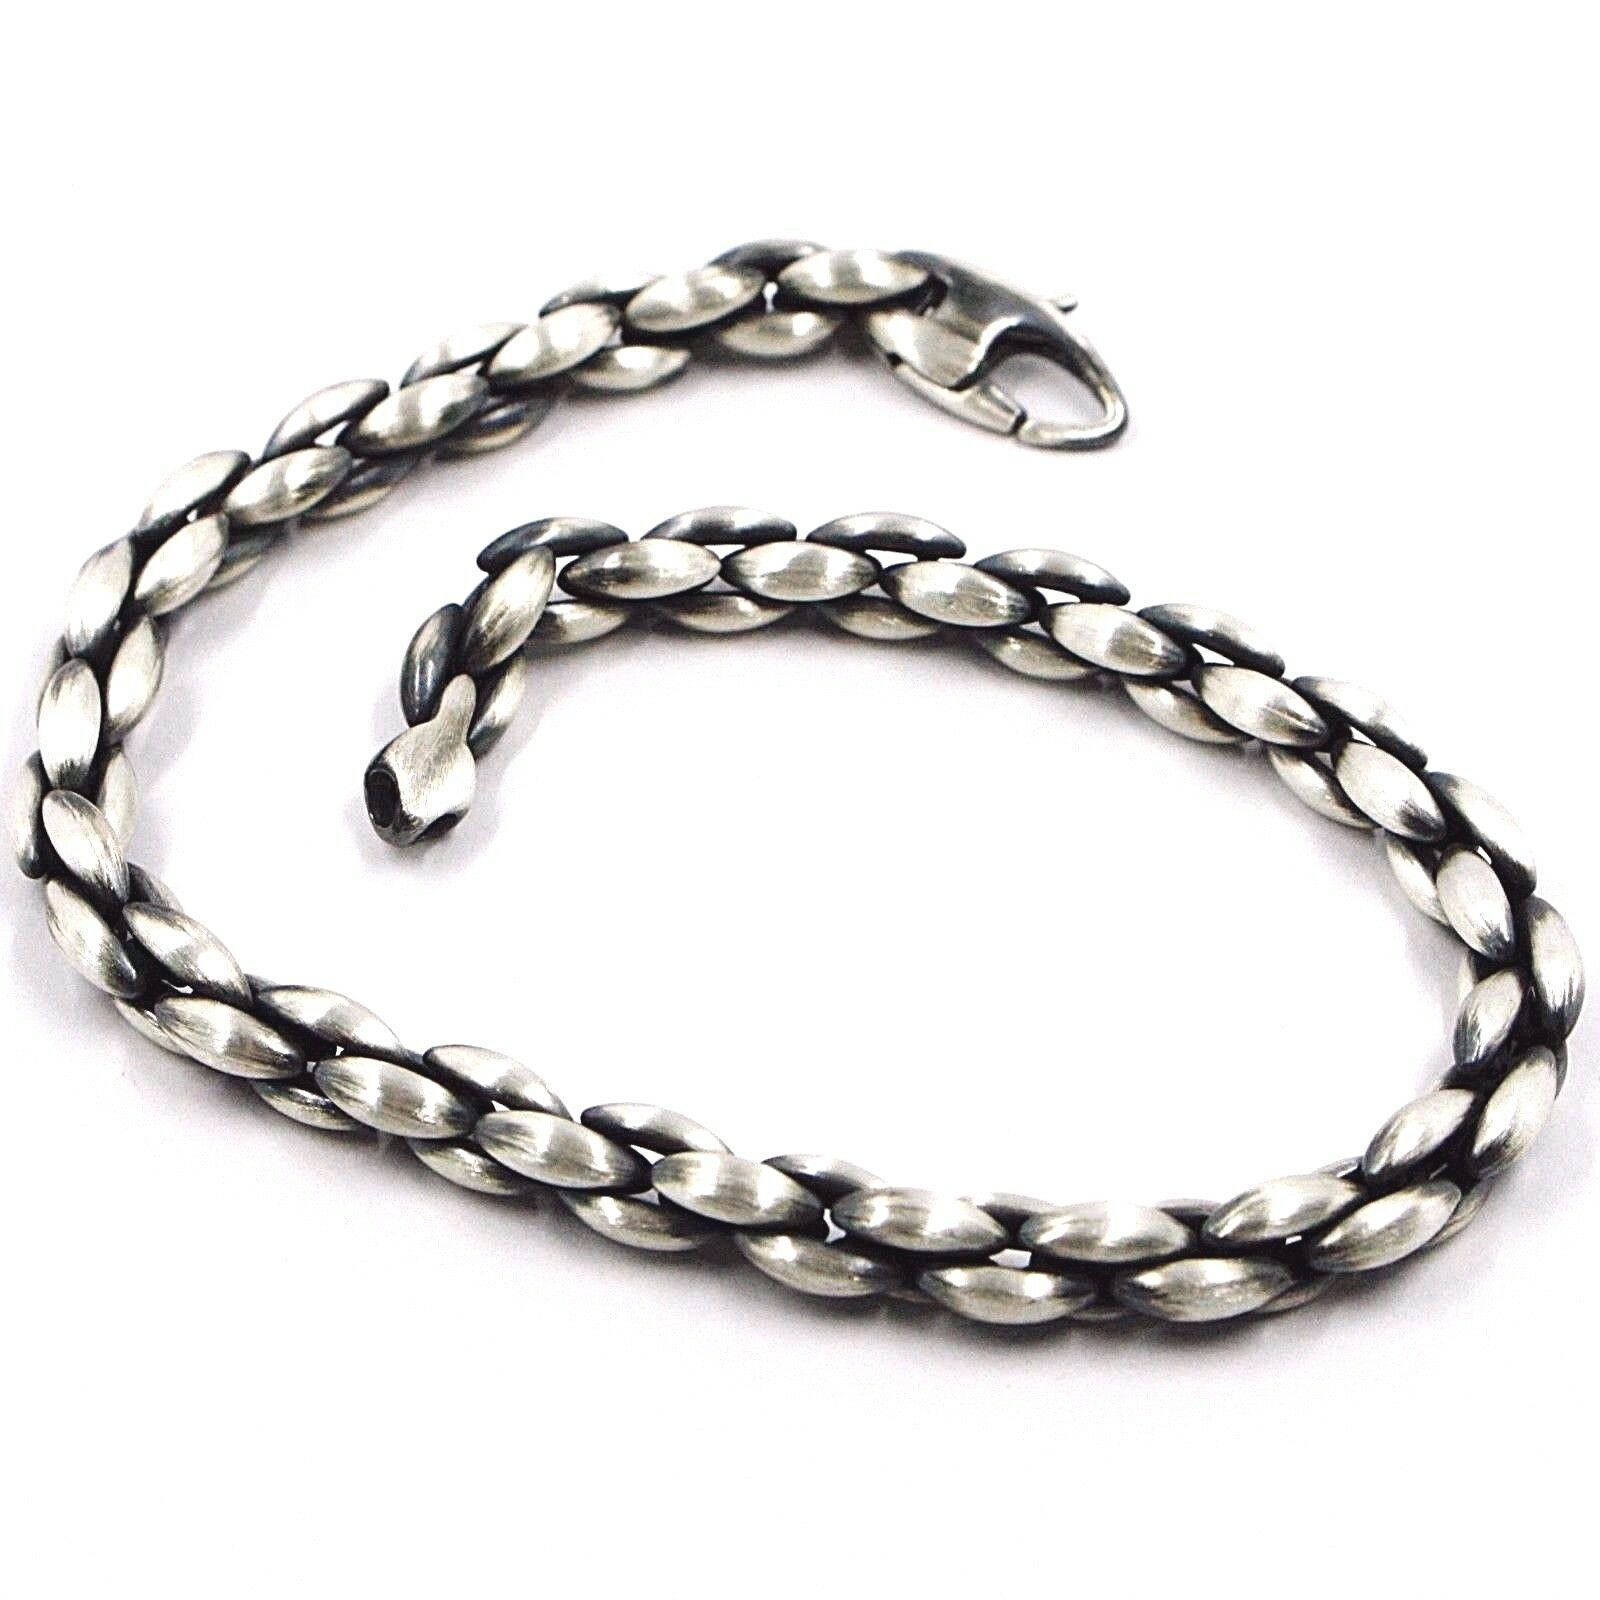 Silver Bracelet 925, Burnished Satin, Braided, Braid, Pipe, 21.5 CM